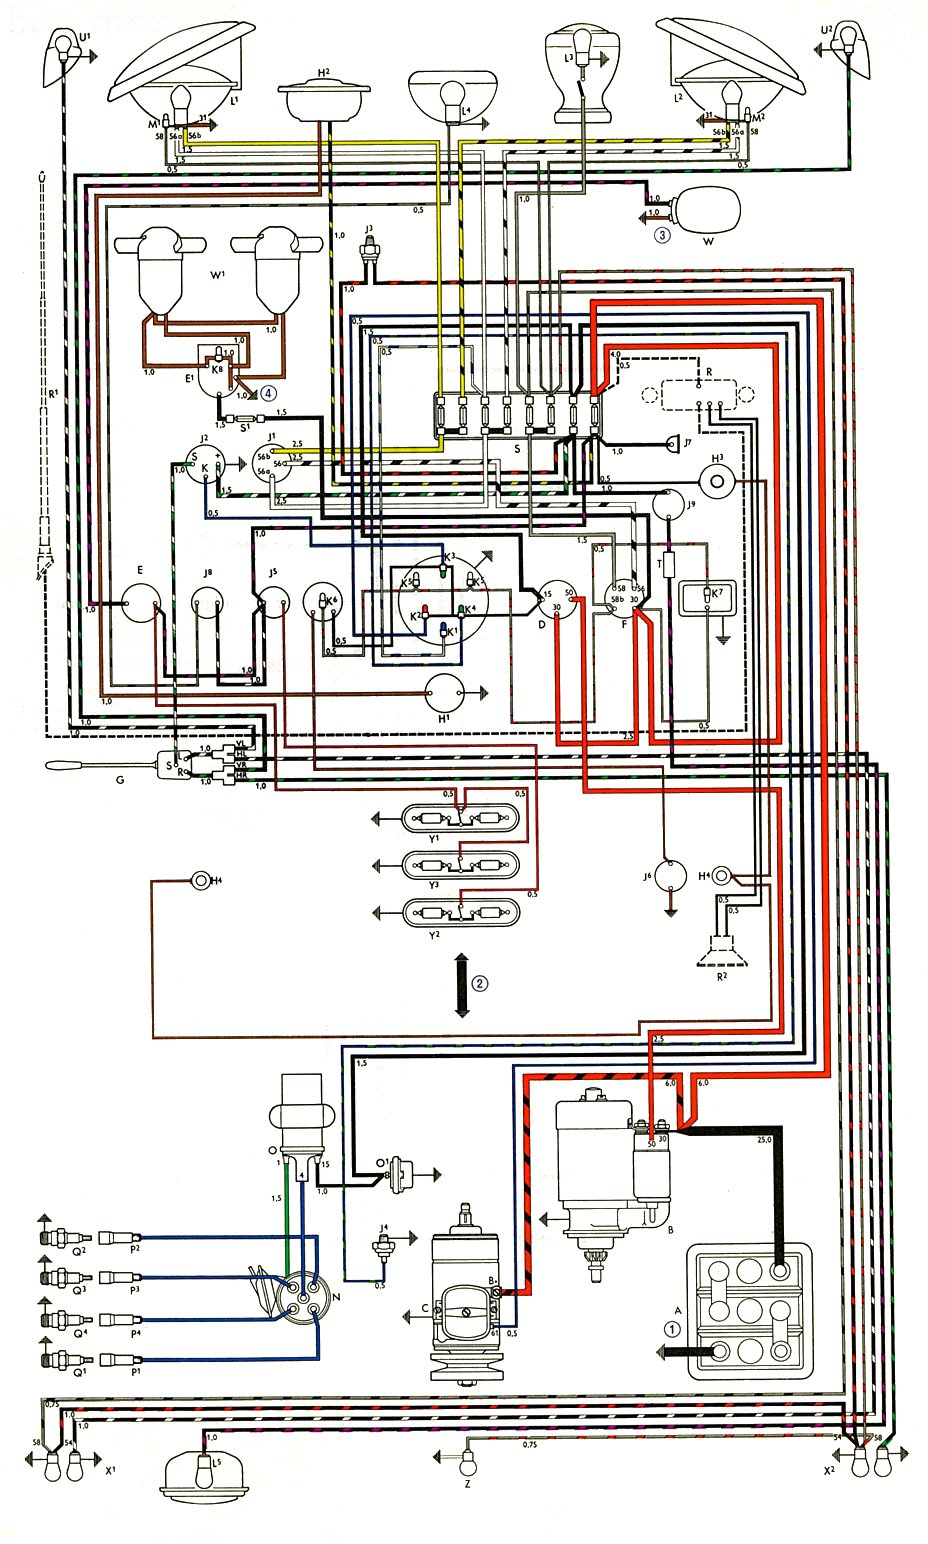 67 vw wiring harness wiring diagram Car Stereo Wiring Harness 57 vw wiring harness installation schema wiring diagram57 vw wiring harness installation wiring library 67 vw